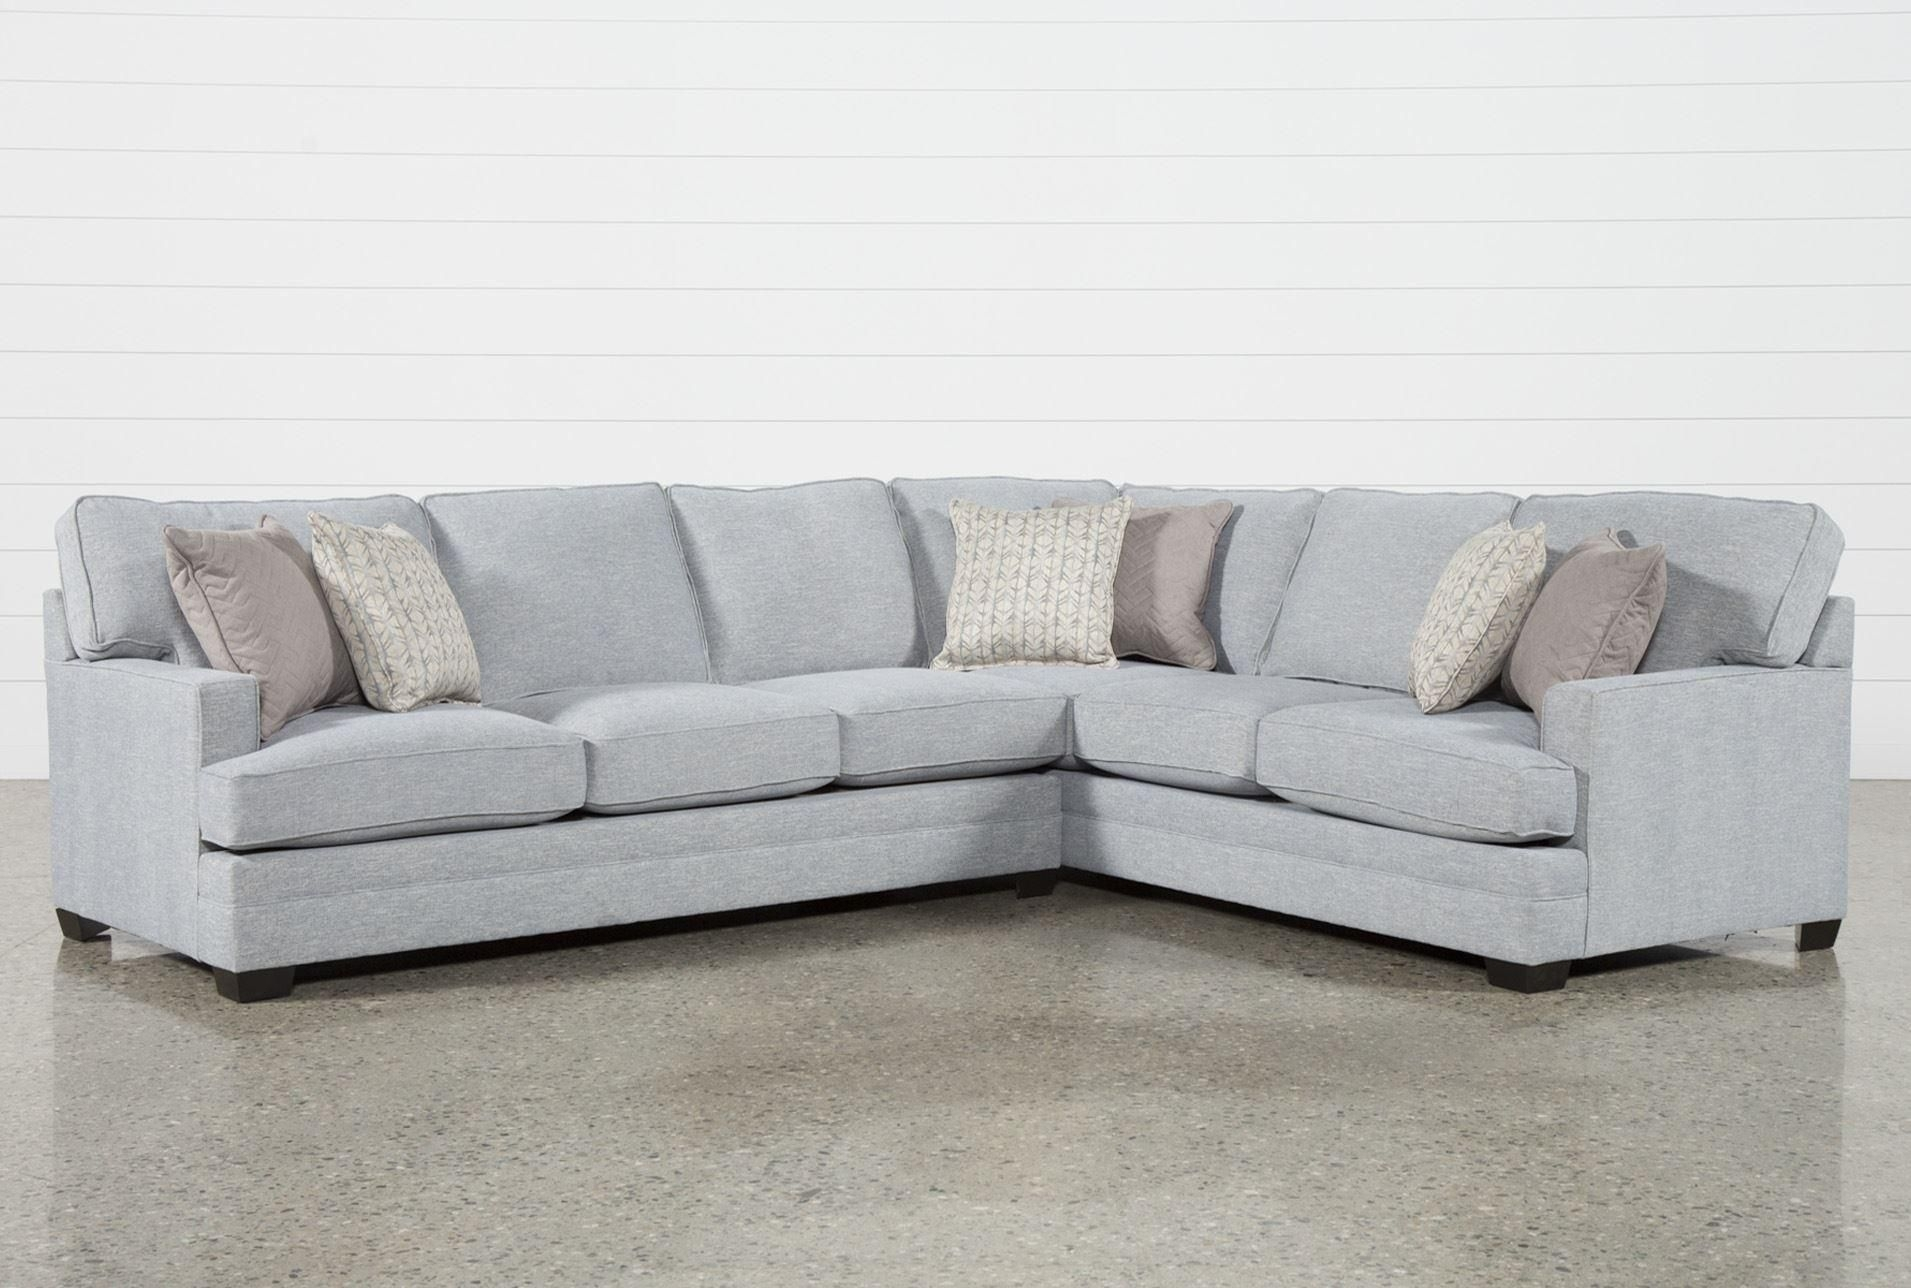 Josephine 2 Piece Sectional W/laf Sofa | For The Home | Pinterest With Regard To Aquarius Dark Grey 2 Piece Sectionals With Raf Chaise (Photo 8 of 25)